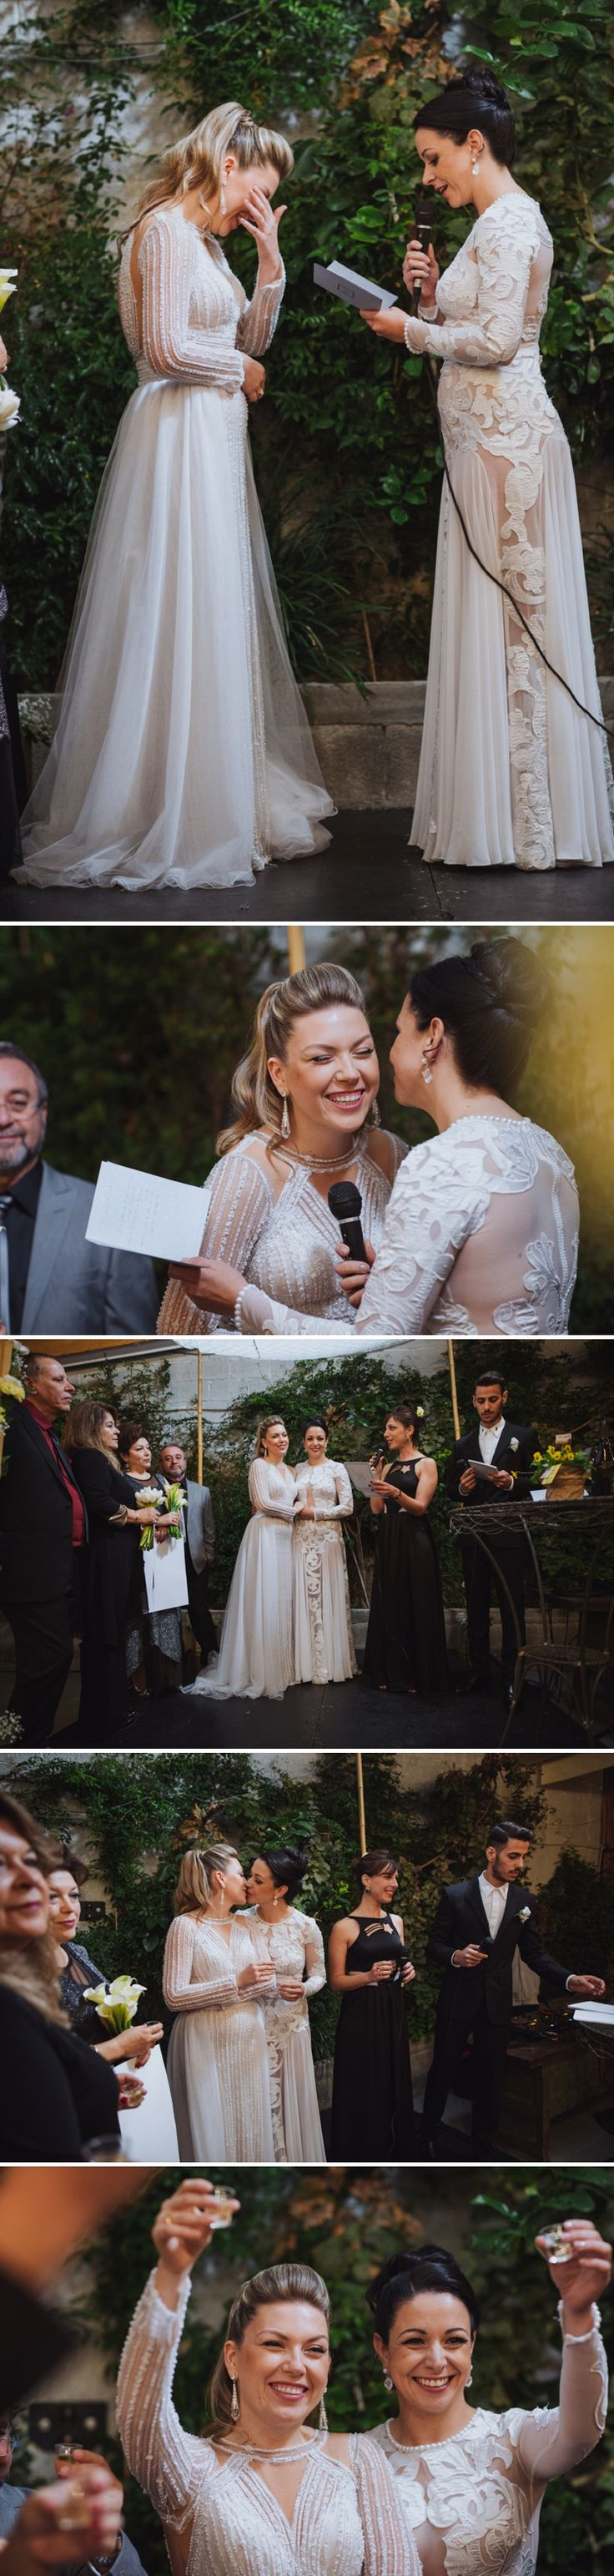 Ori and Shani | Urban-Chic Jewish lesbian wedding at Avigdor 22, Tel Aviv, Israel